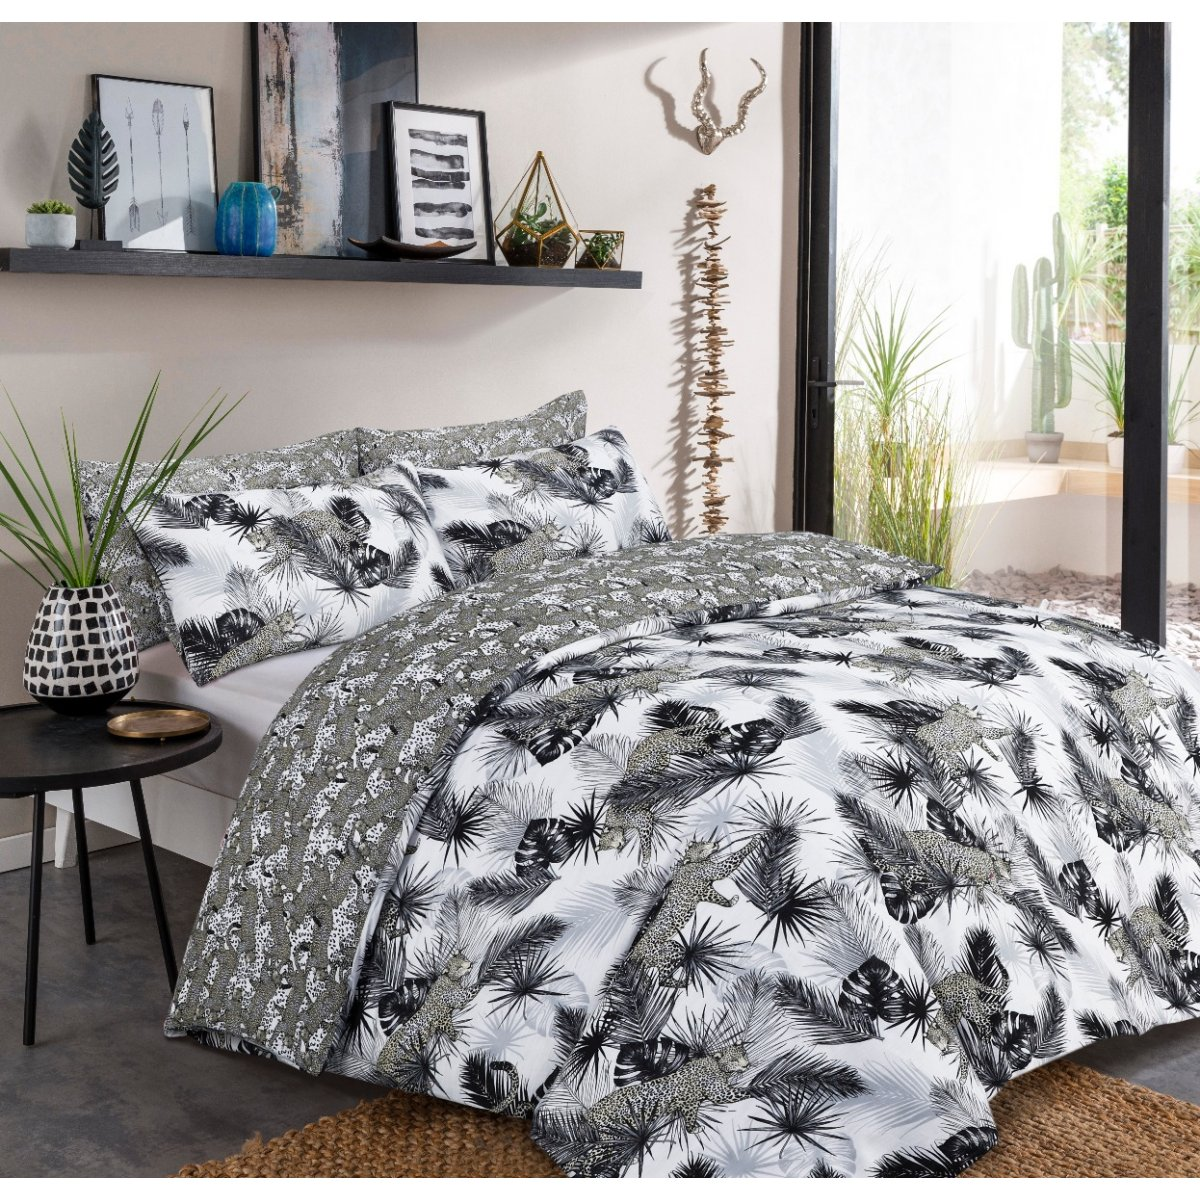 Leopard Jungle Monochrome Bedding - Reversible Duvet Cover and Pillowcase Set